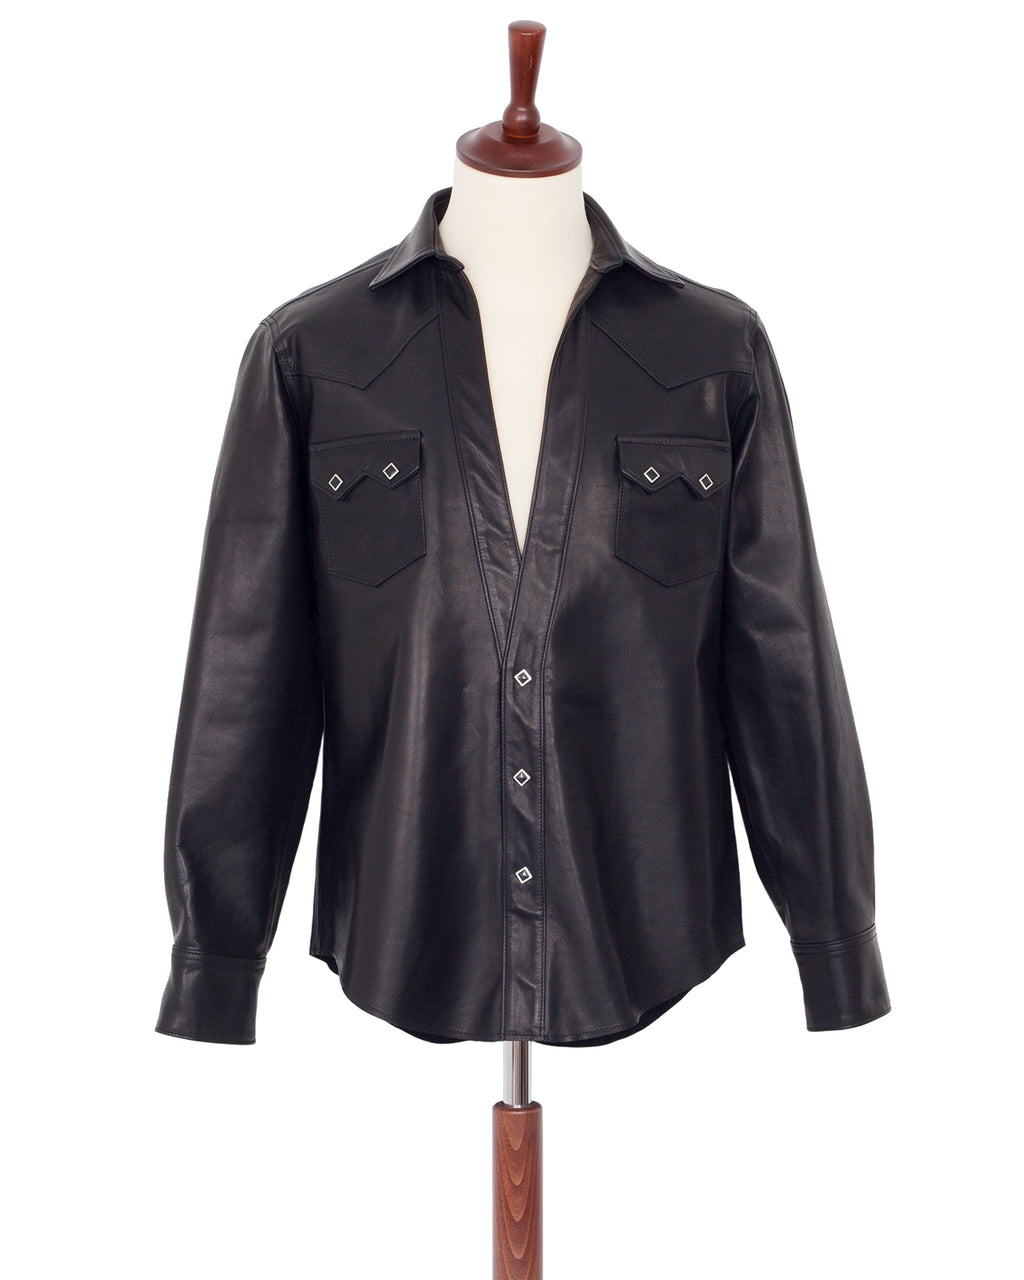 The Letters Western Cutting Shirt, Leather